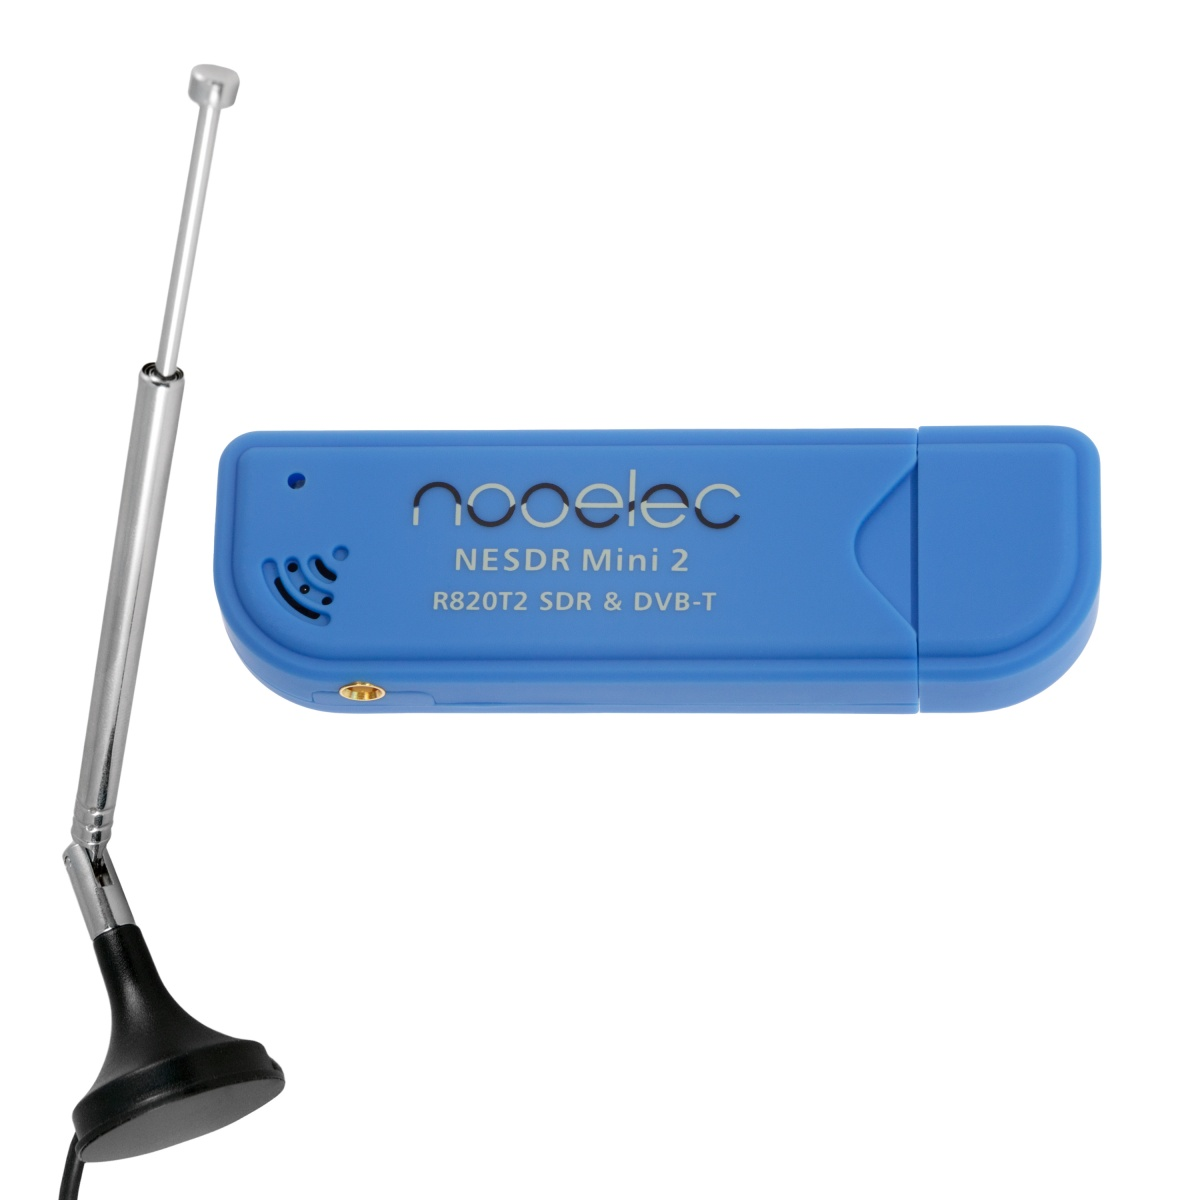 Nooelec Nooelec Nesdr Mini 2 Usb Rtl Sdr And Ads B Receiver Set Rtl2832u And R820t2 Tuner W Antenna Mcx Input Low Cost Software Defined Radio Compatible With Many Sdr Software Packages Esd Safe